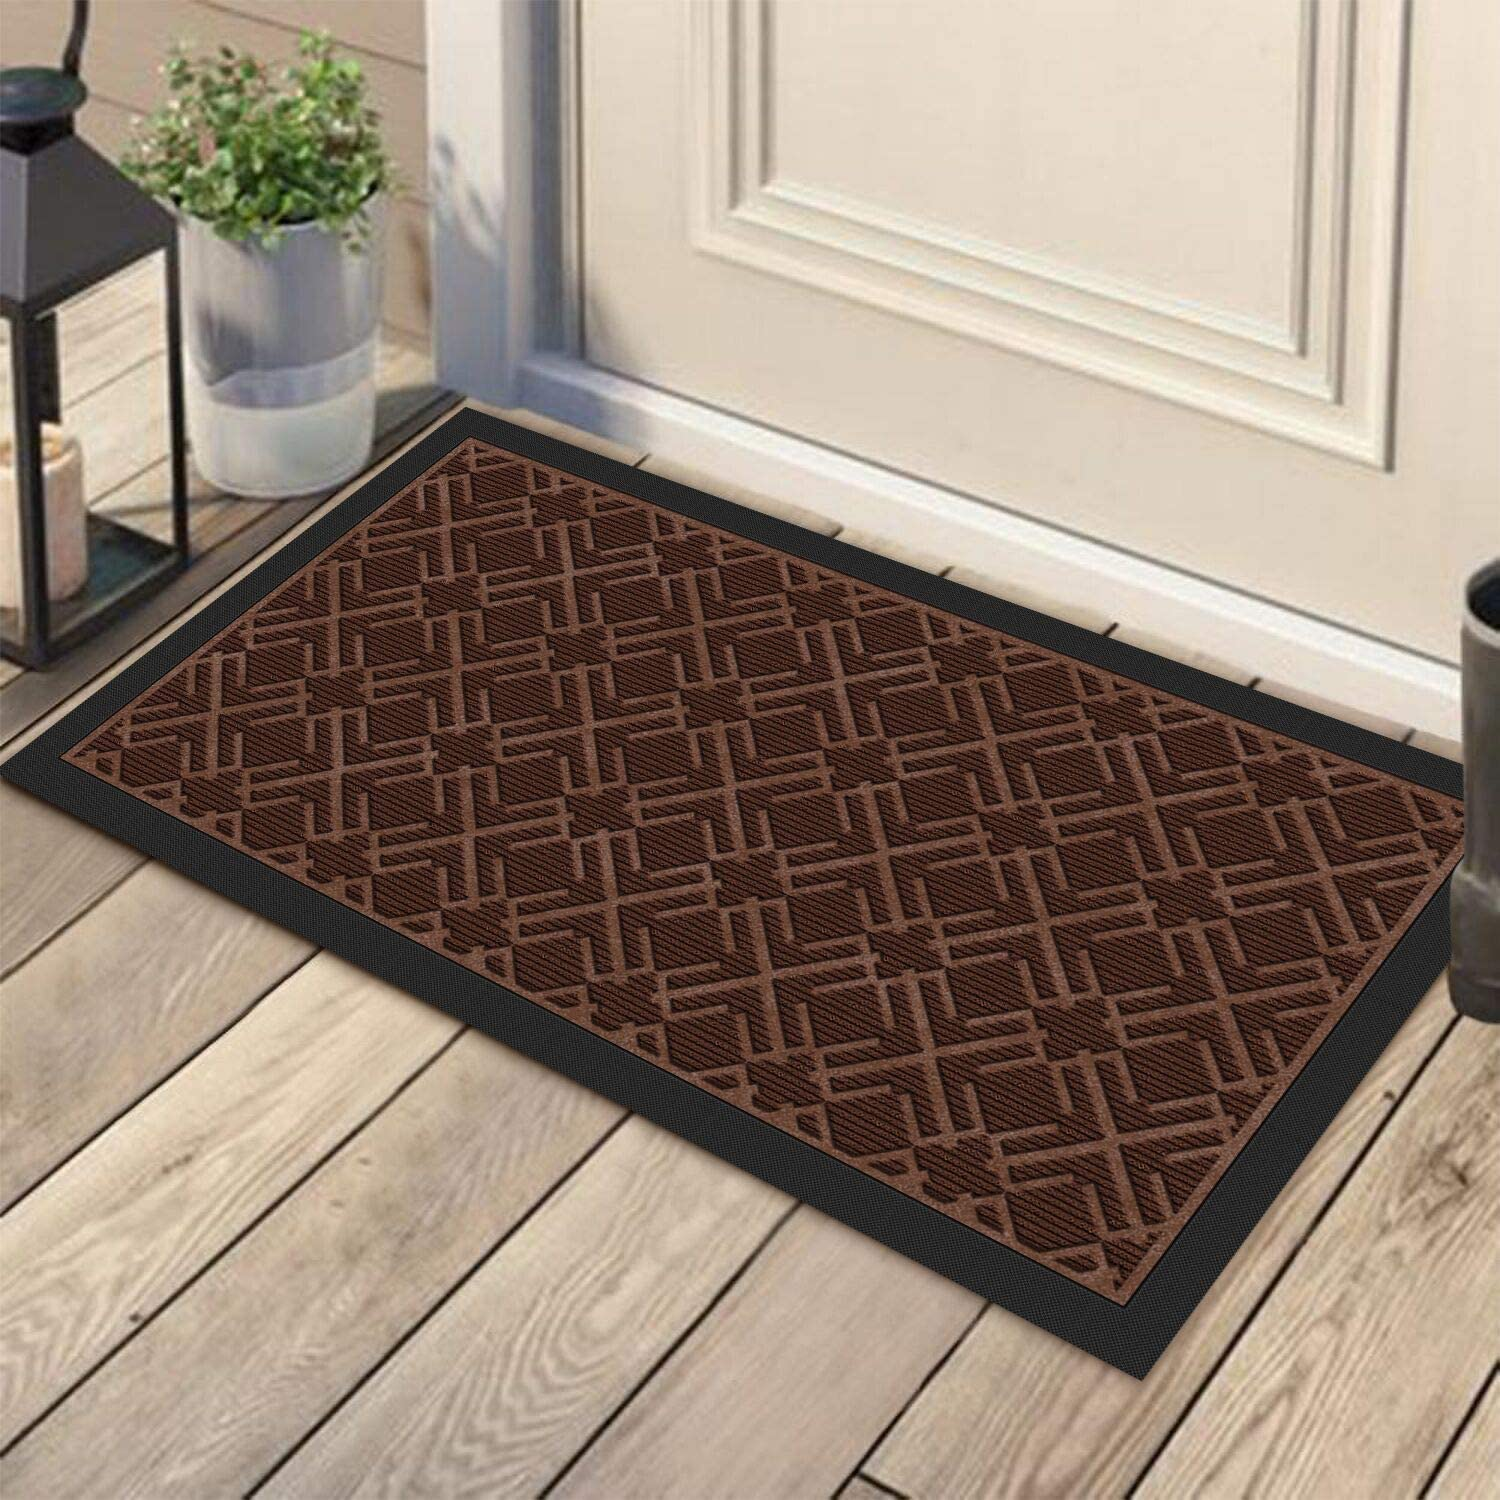 KMAT Door Mat Inside Outside,Anti-Slip Durable Rubber Doormat Indoor Outdoor Front Door Mat Rugs for Entryway,Patio,Lawn,Garage,High Traffic Areas(Low-Profile Design,30x17 inches,Brown)